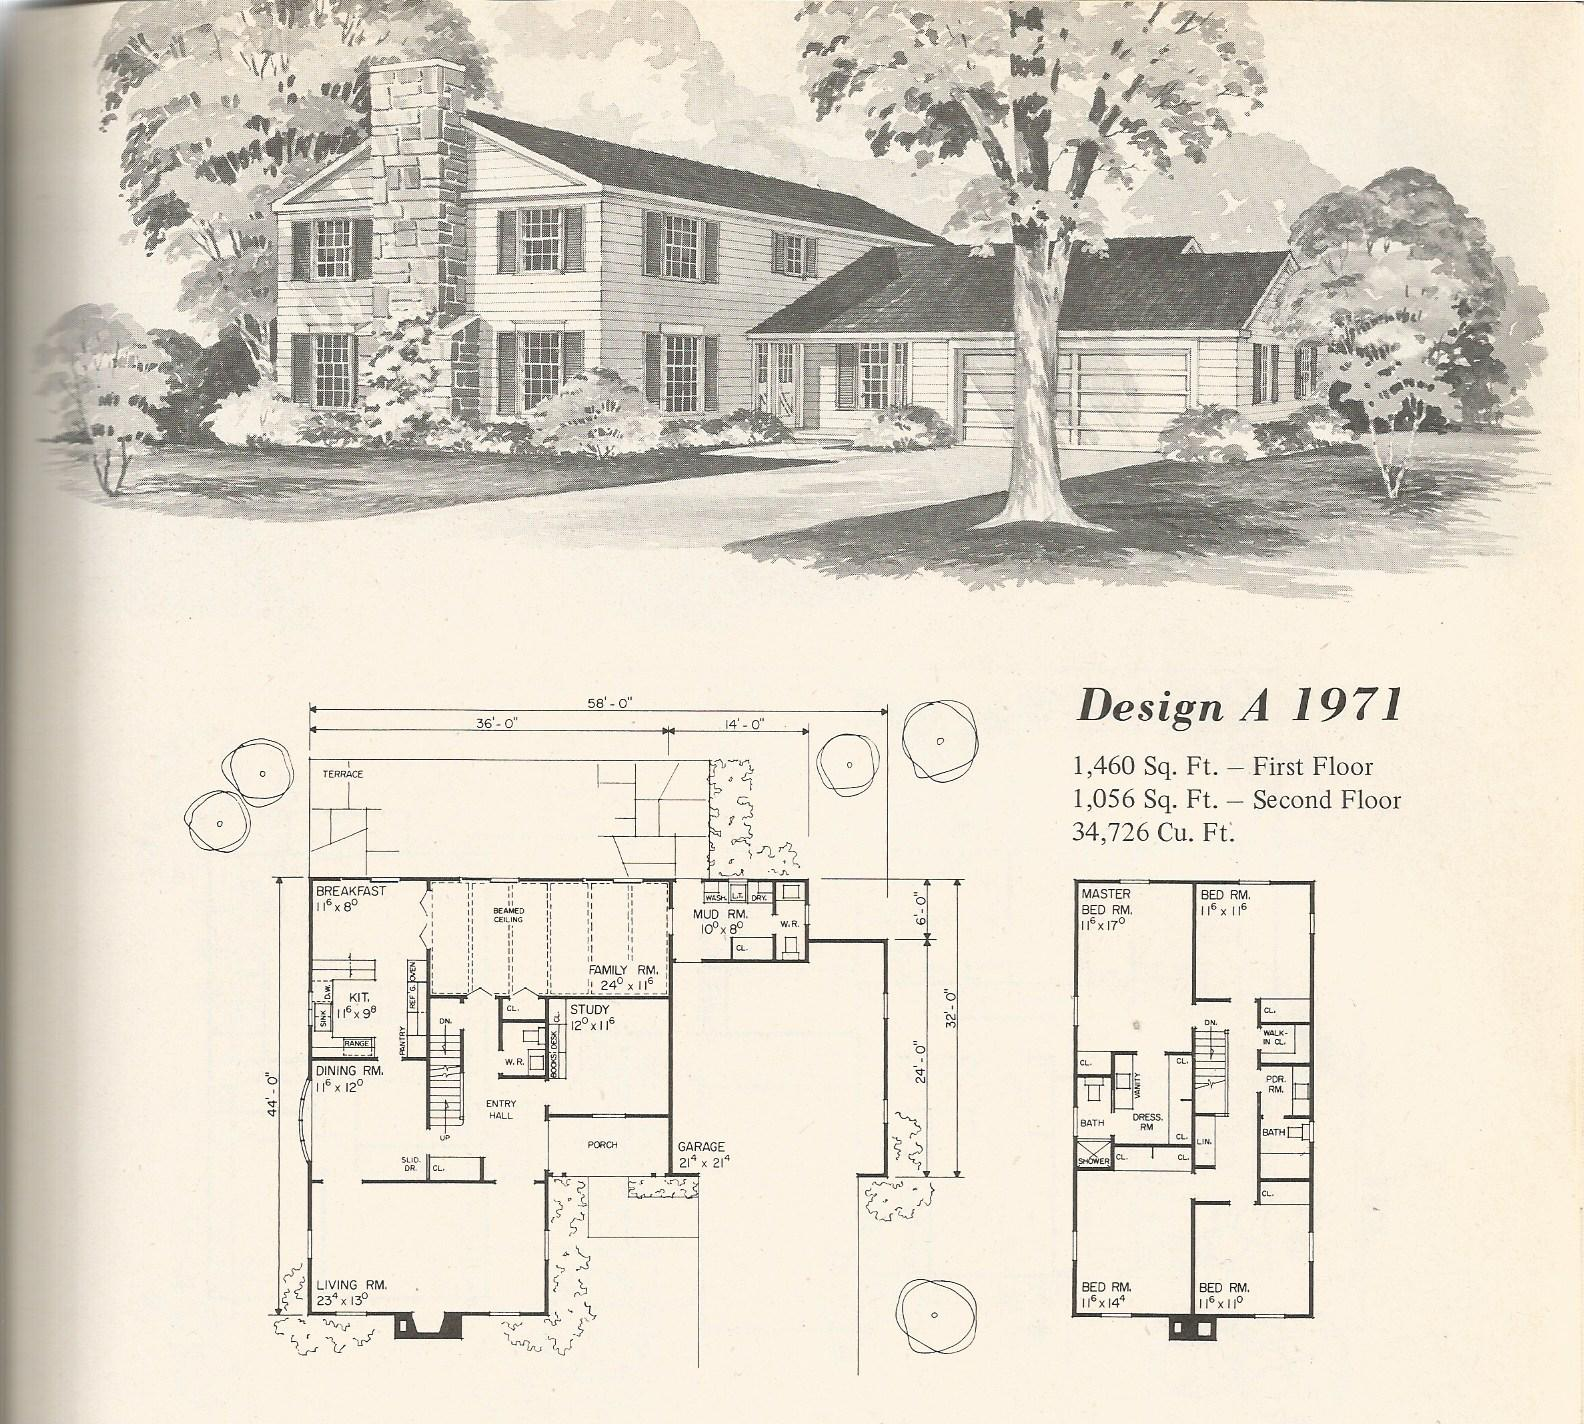 Vintage home plans old west 1971 antique alter ego for Historic farmhouse floor plans